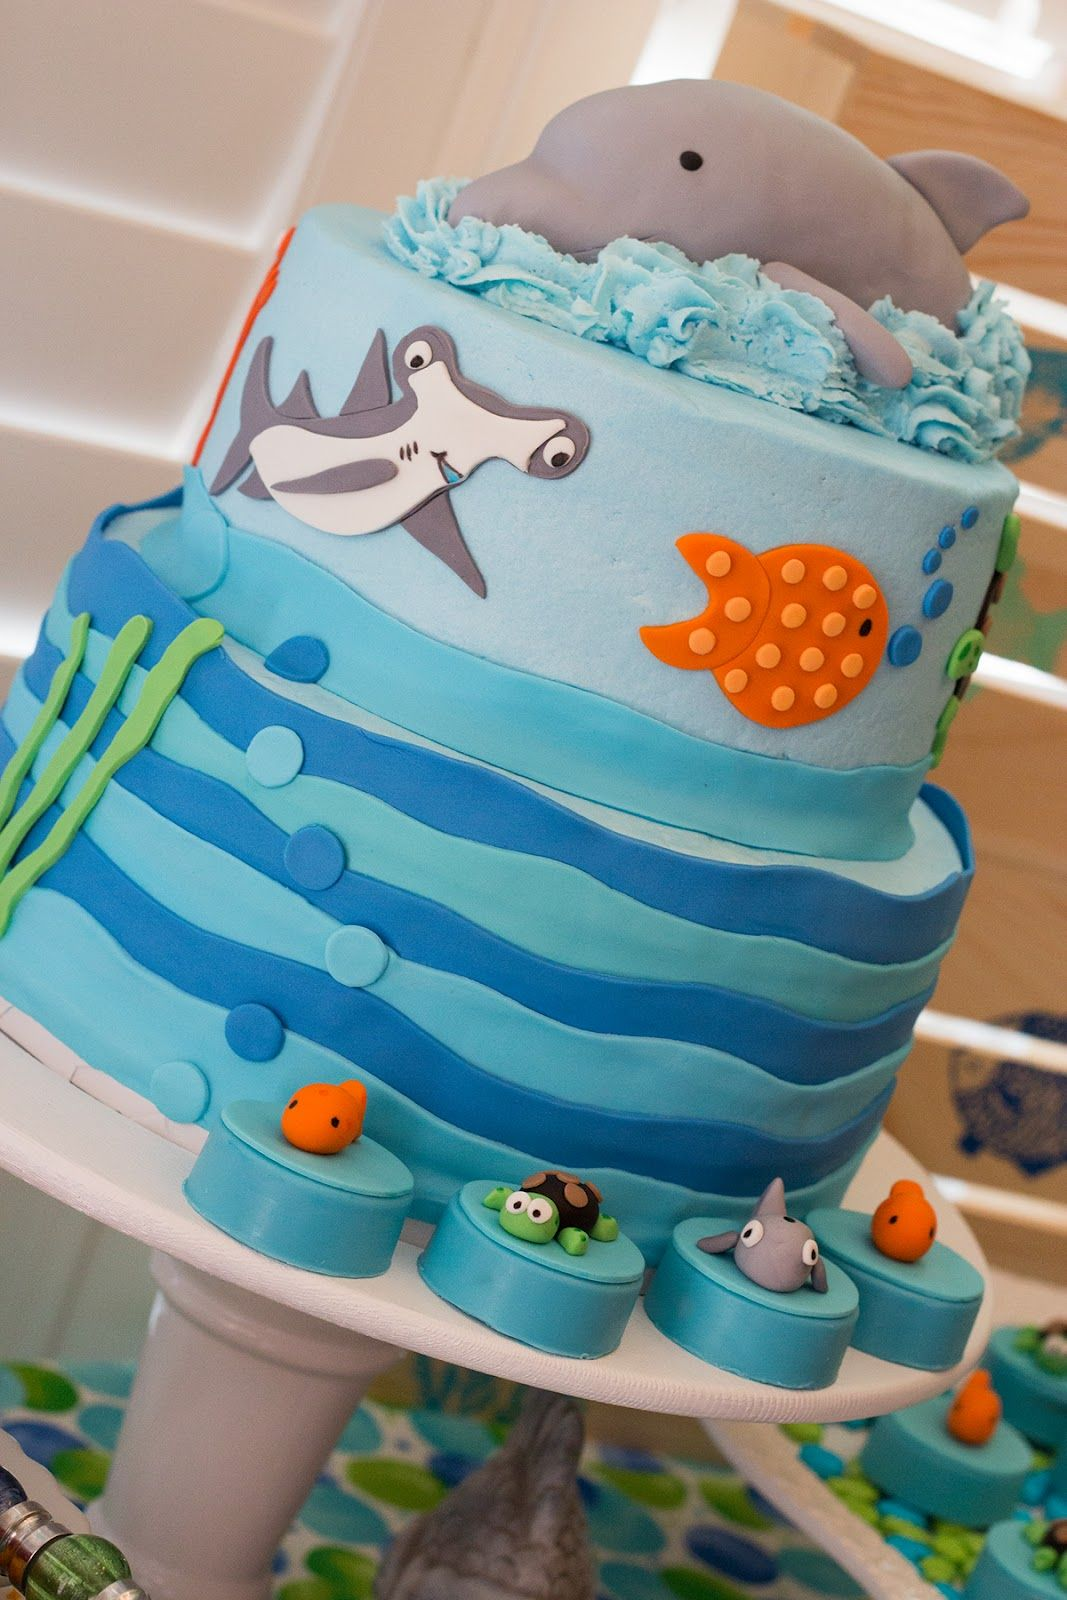 Sea Life Cake For Great Gatherings Based On Artwork From